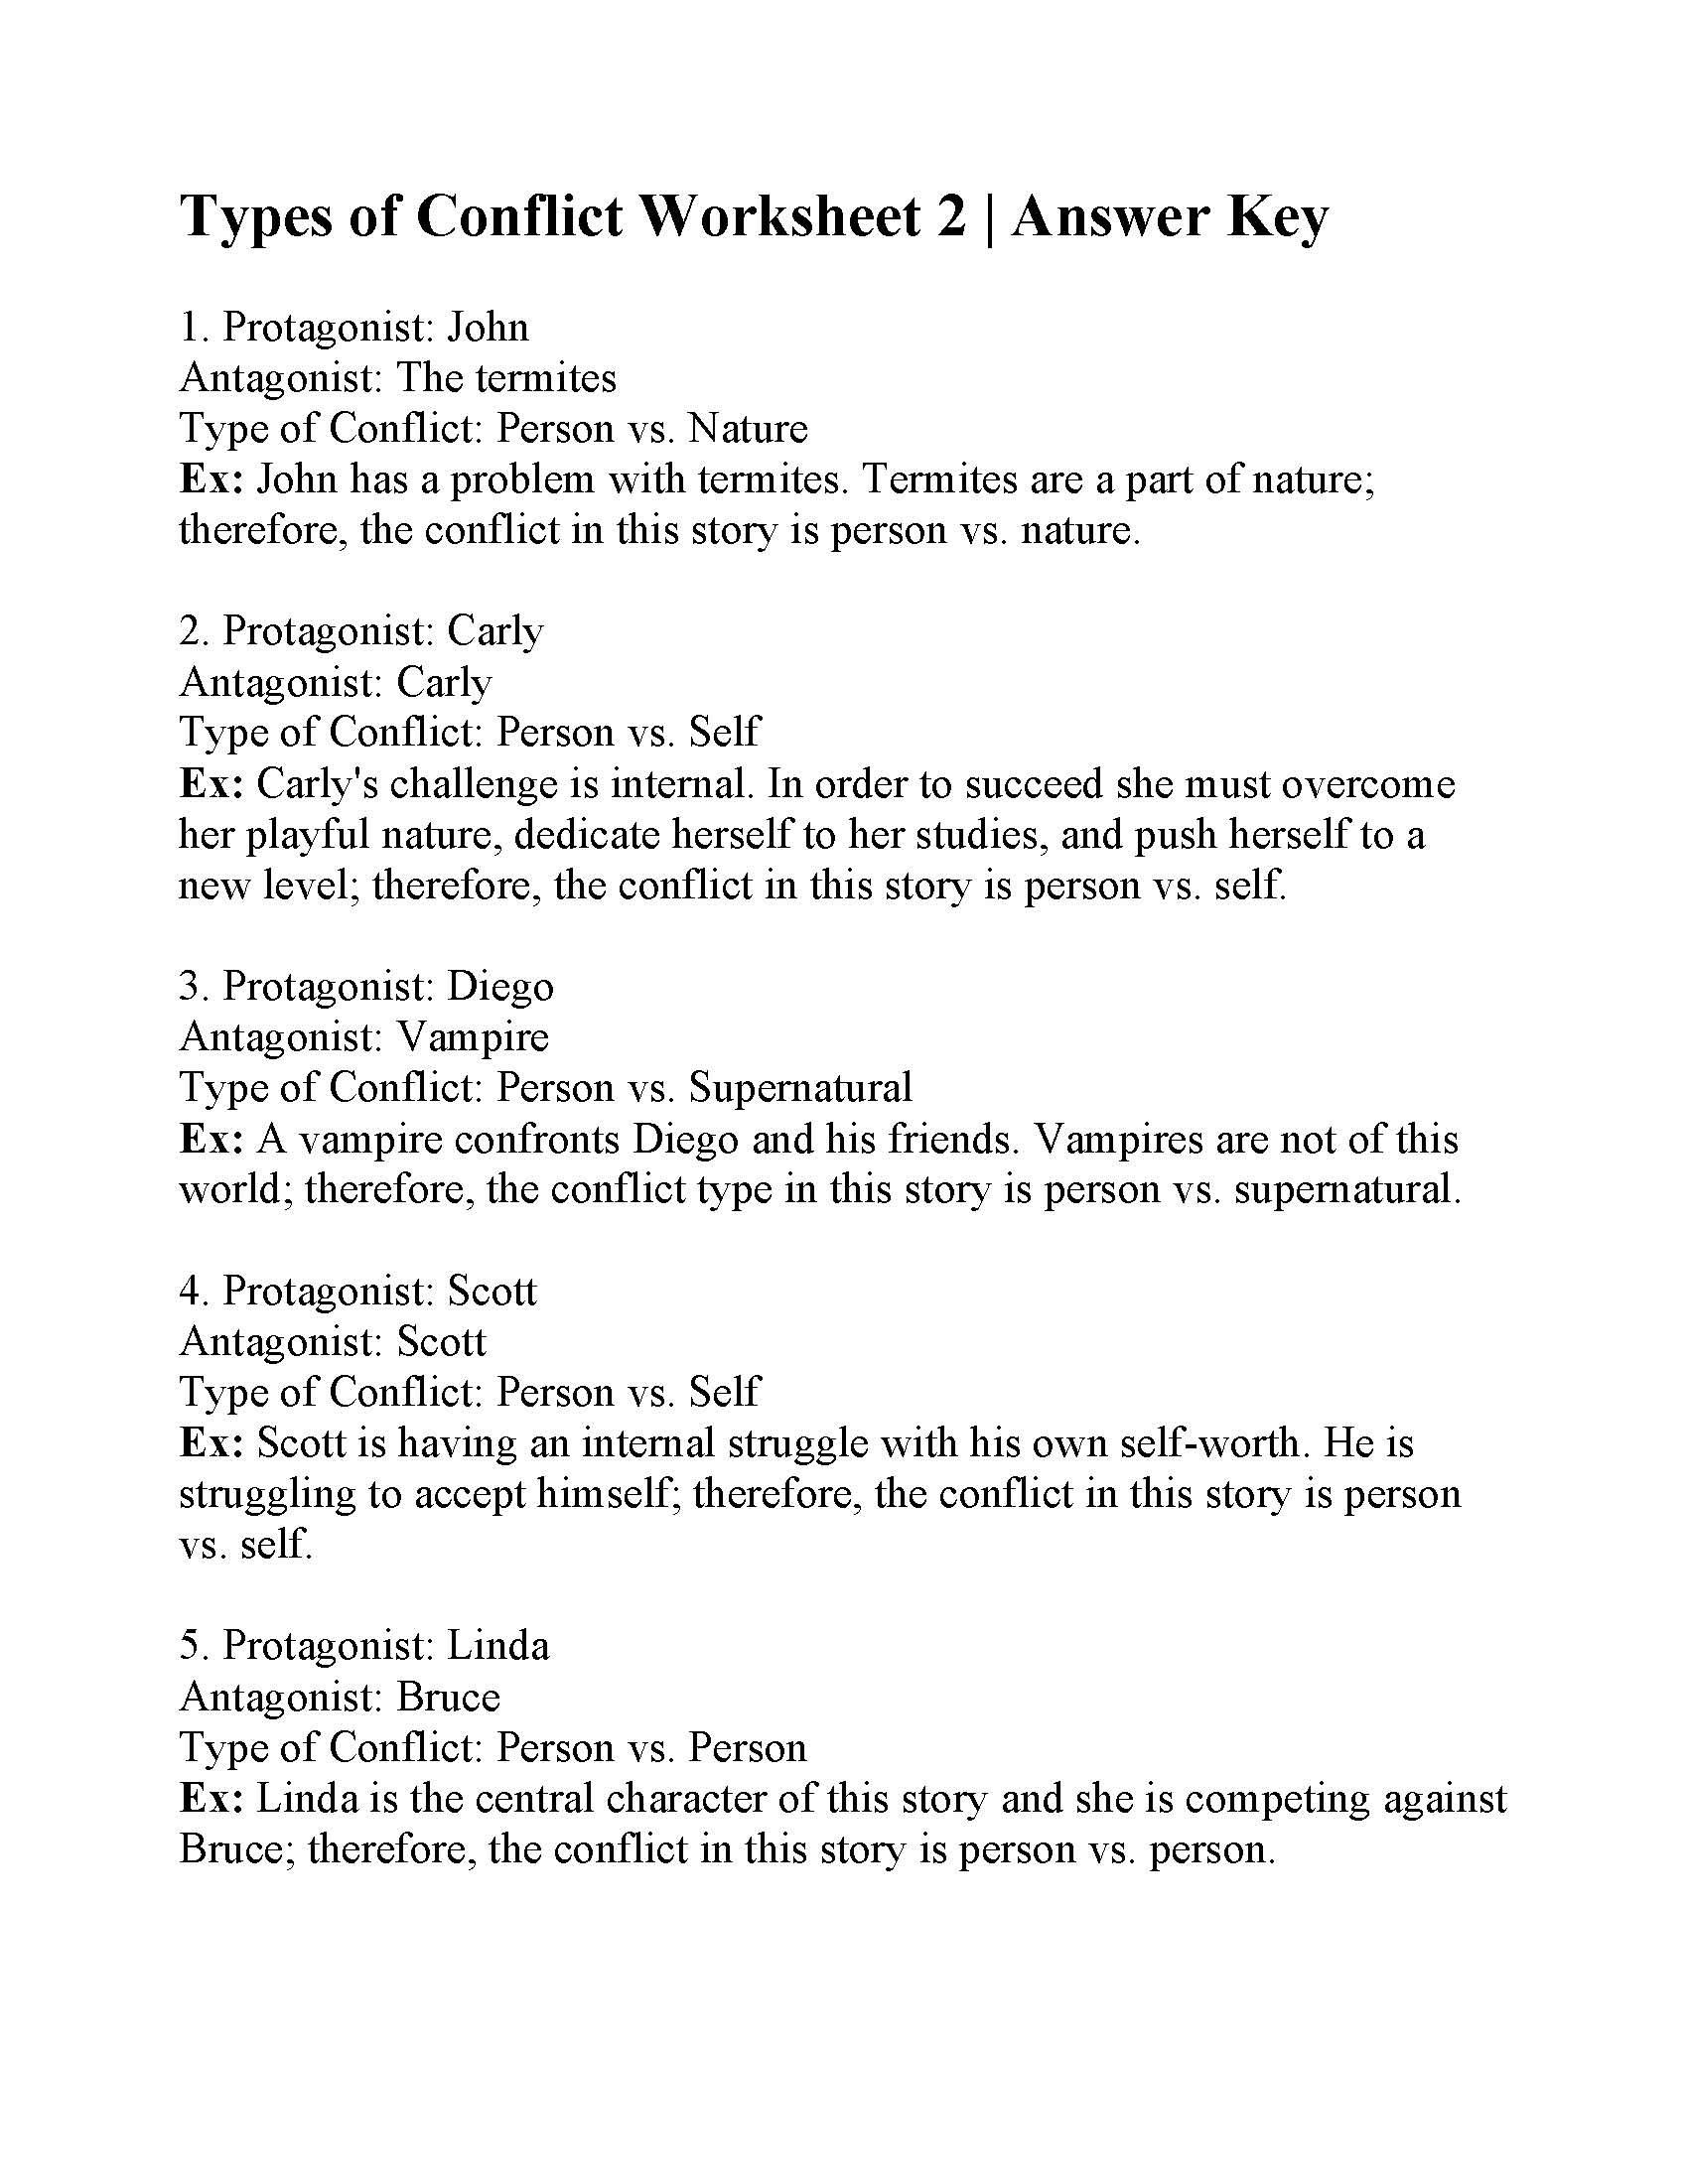 Types Of Conflict Worksheet This is the Answer Key for the Types Of Conflict Worksheet 2